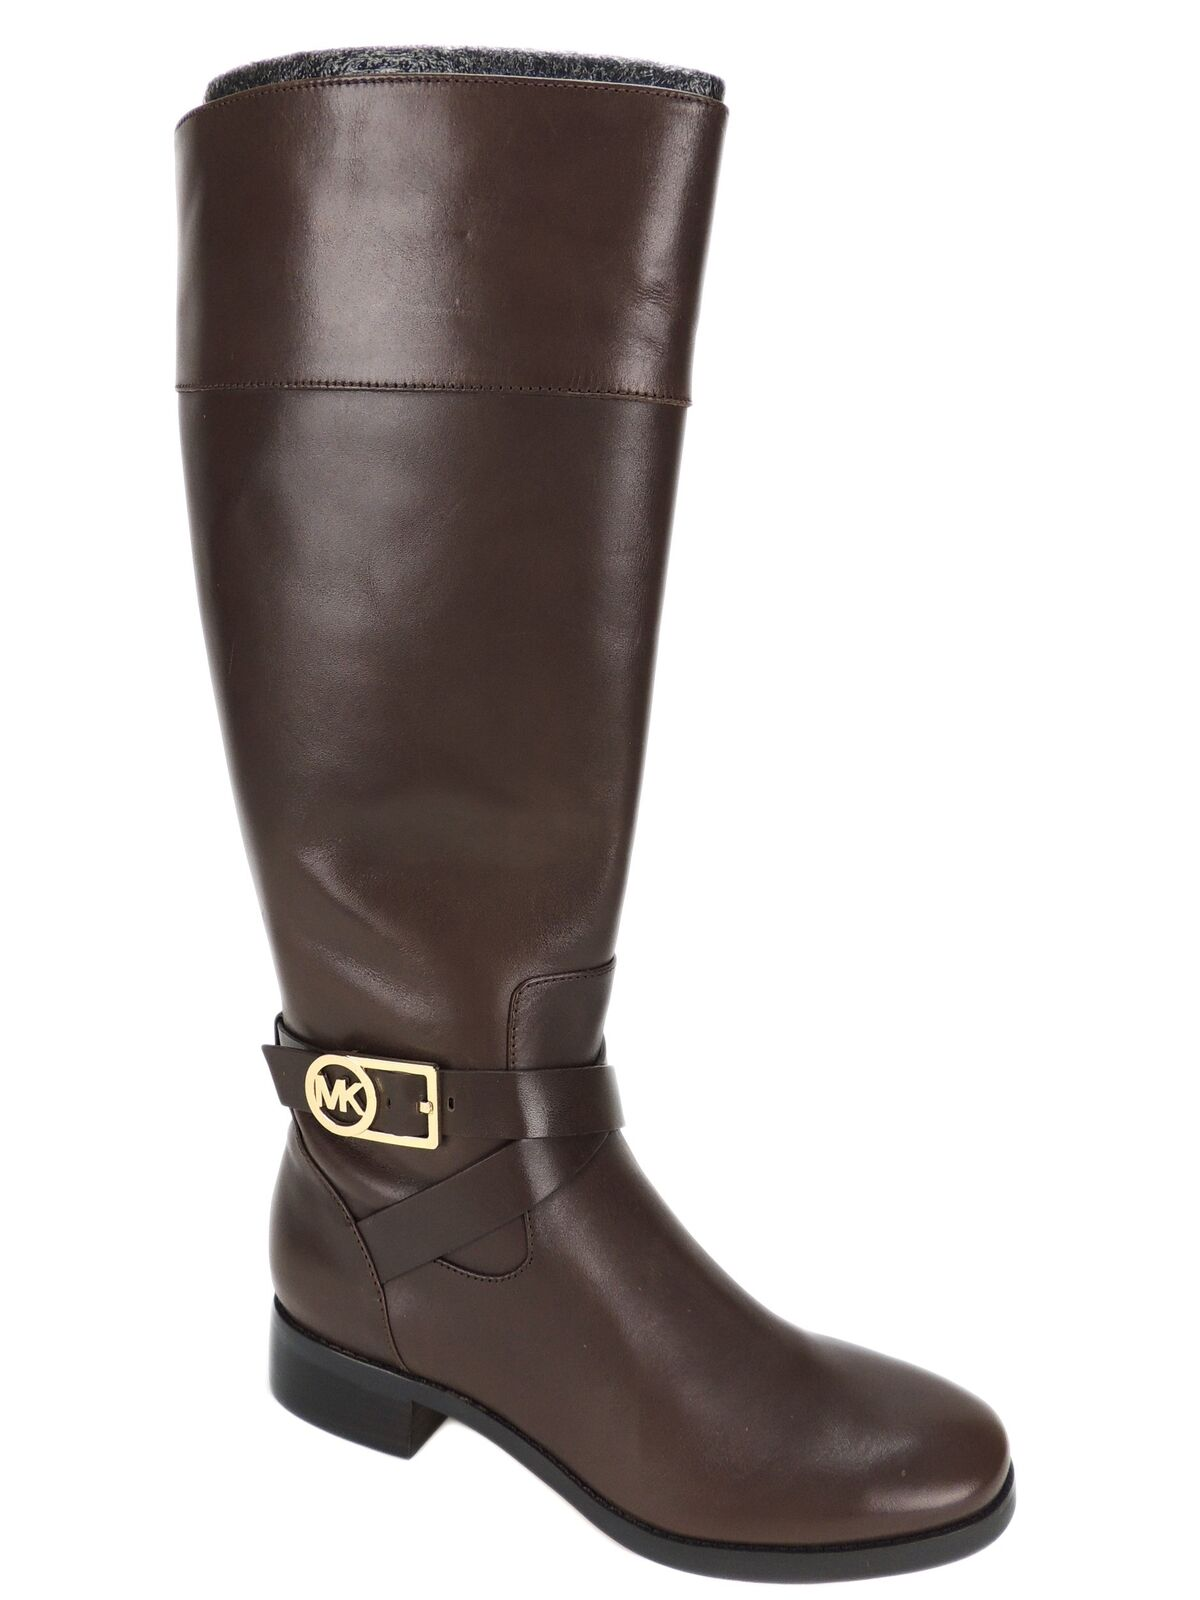 Michael by Michael Kors Women's Bryce Tall Boots Mocha Brown Leather 6.5 M